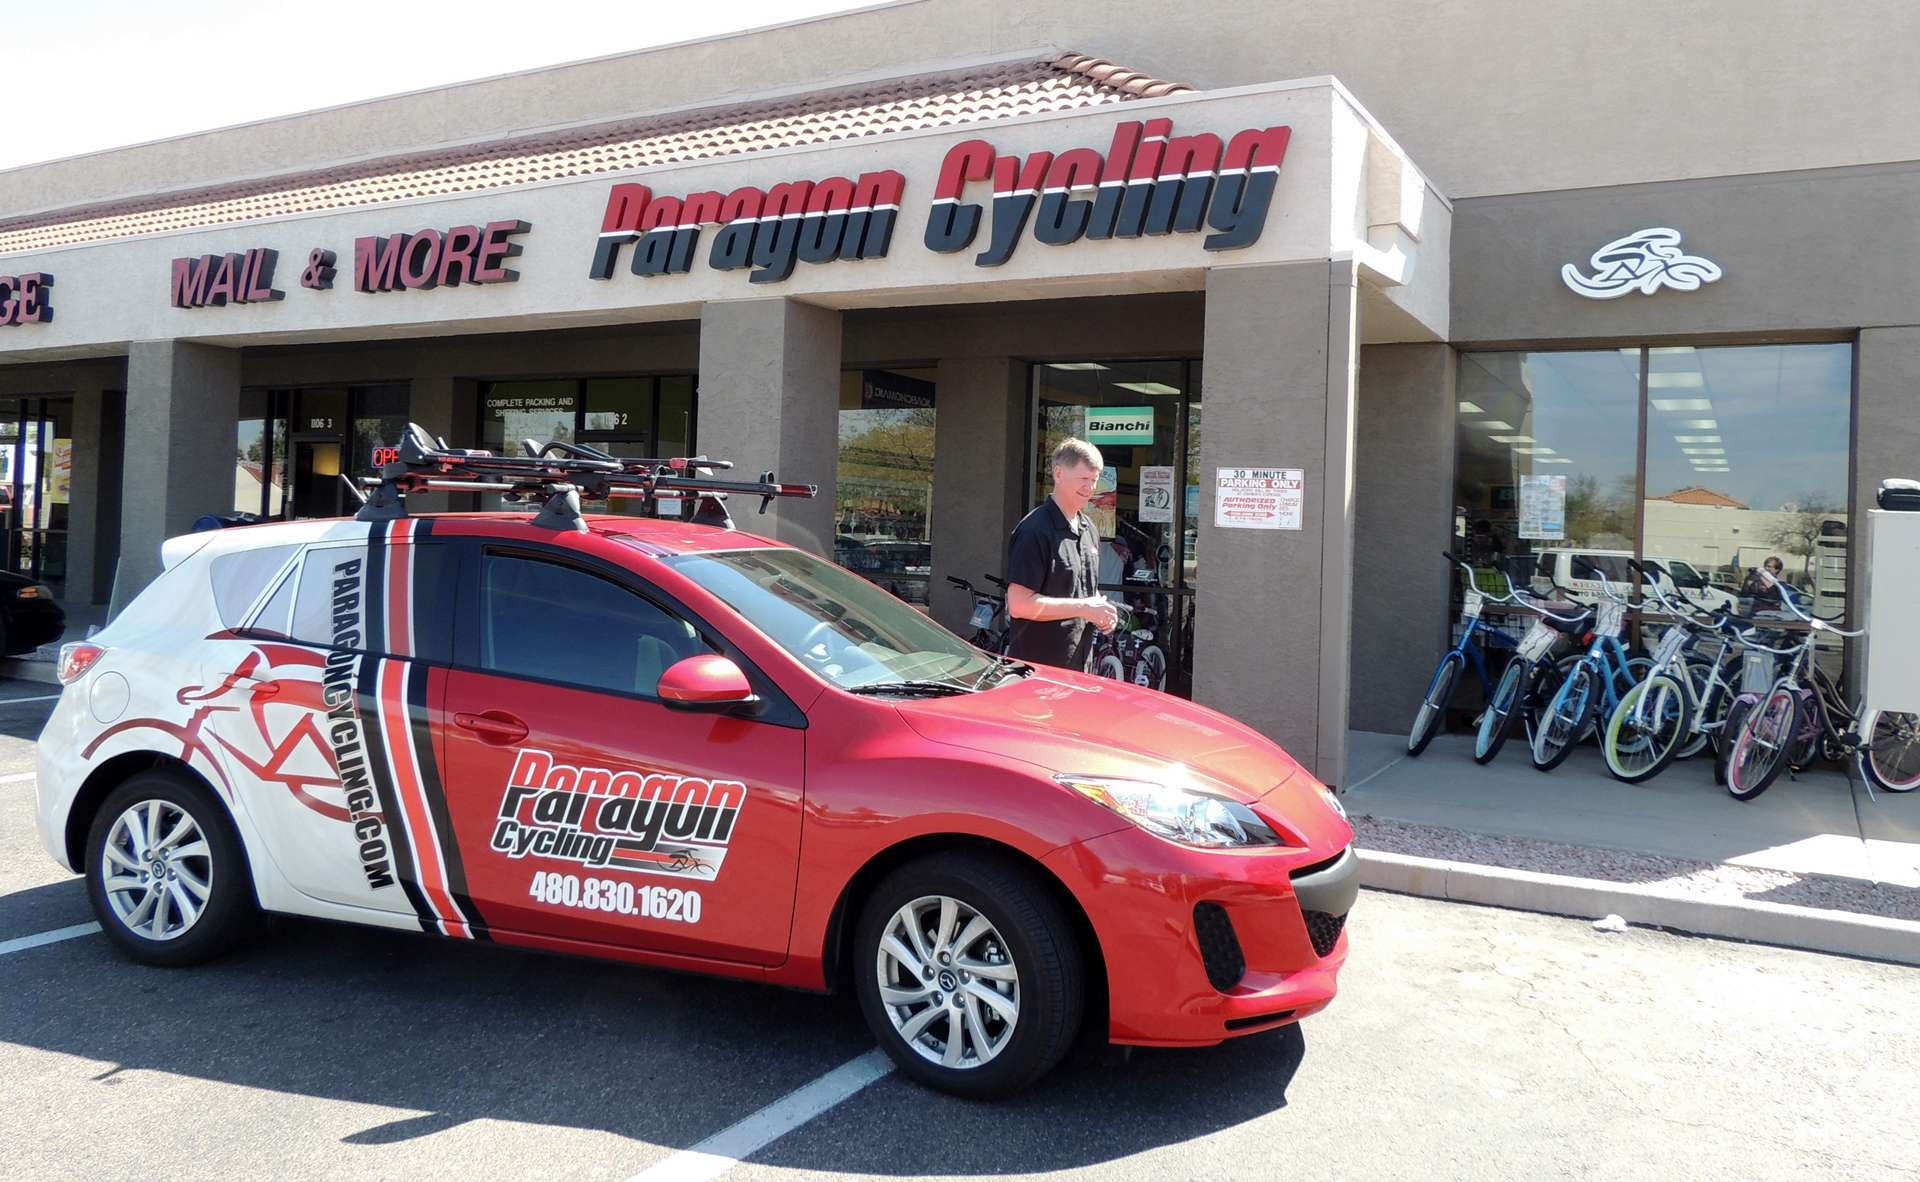 Paragon Cycling, Mesa, AZ